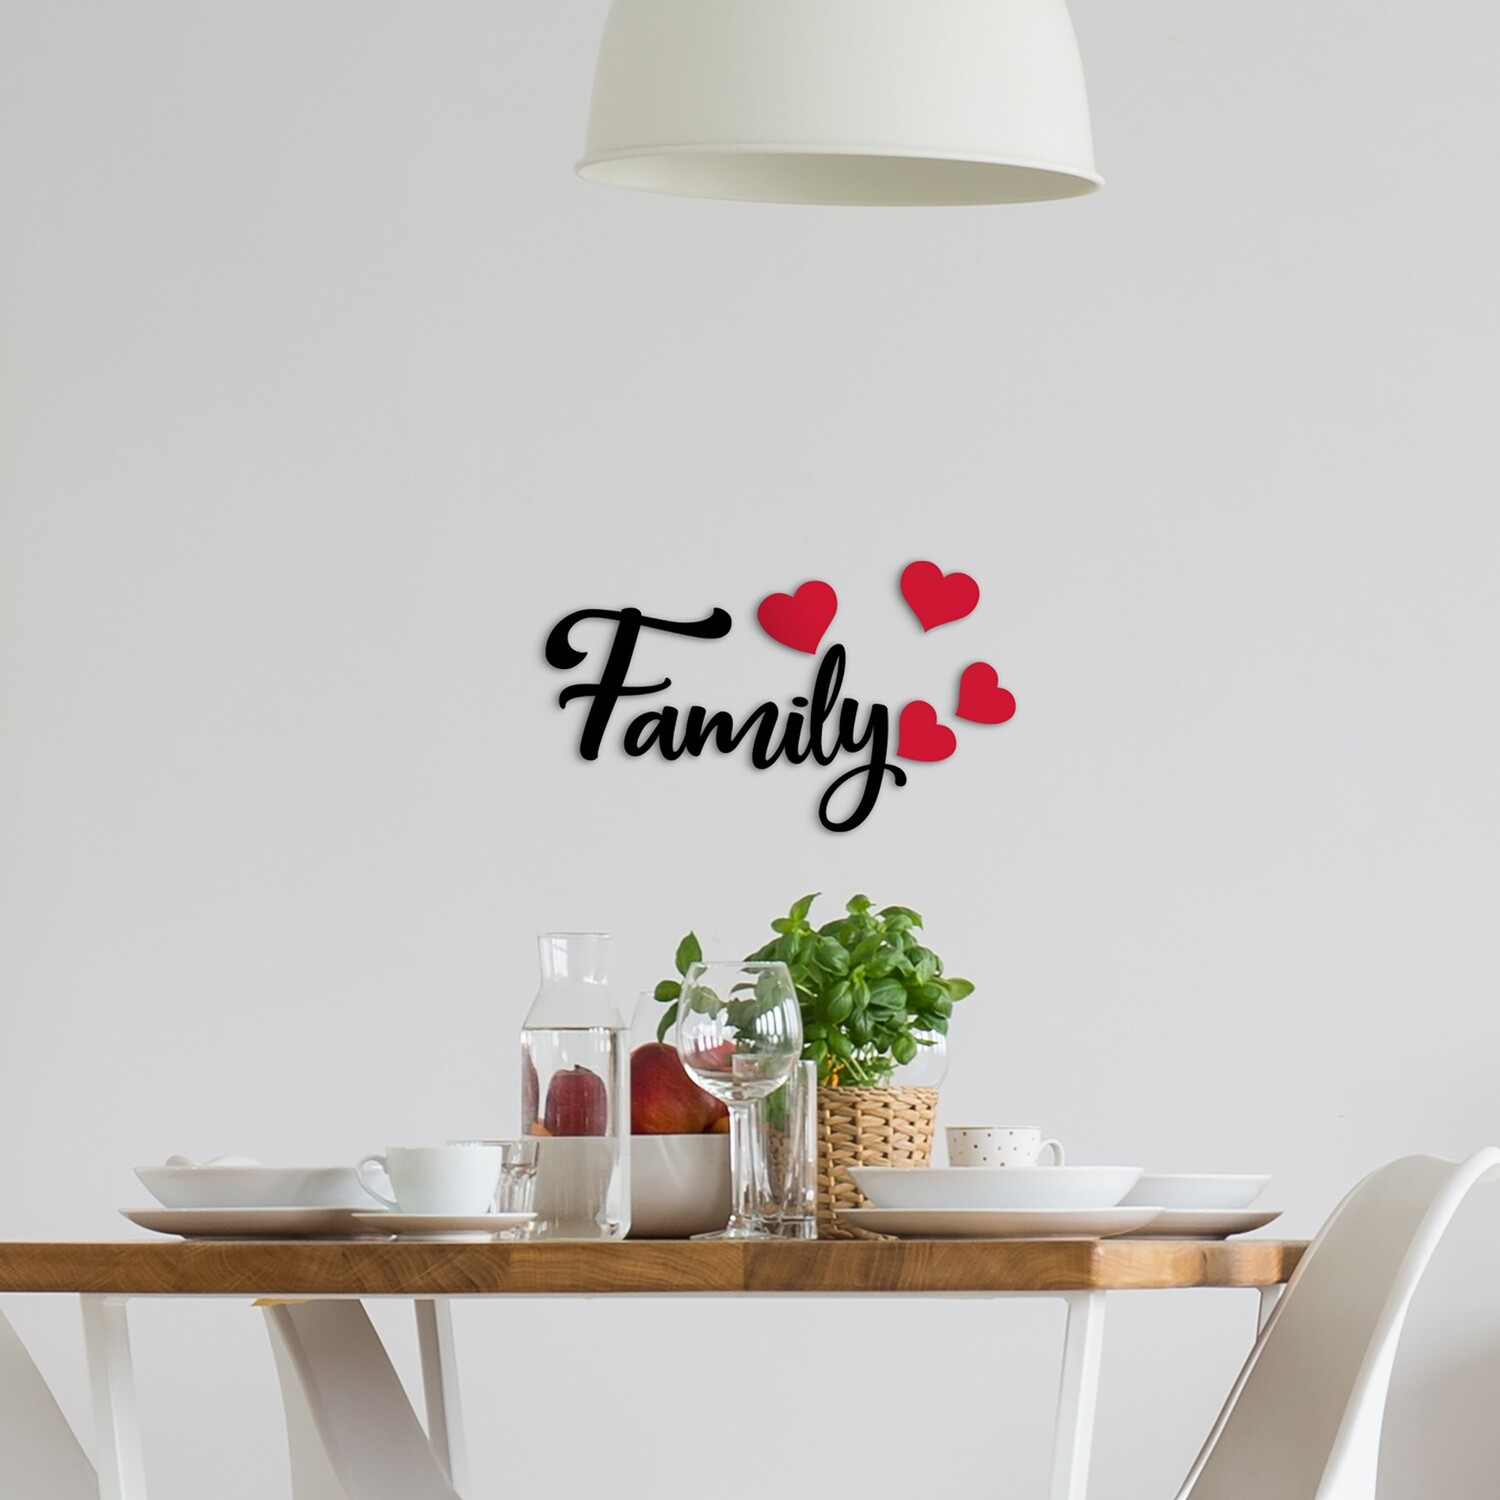 Crearreda 59512 - Family Self Adhesive Removable Foam Sticker